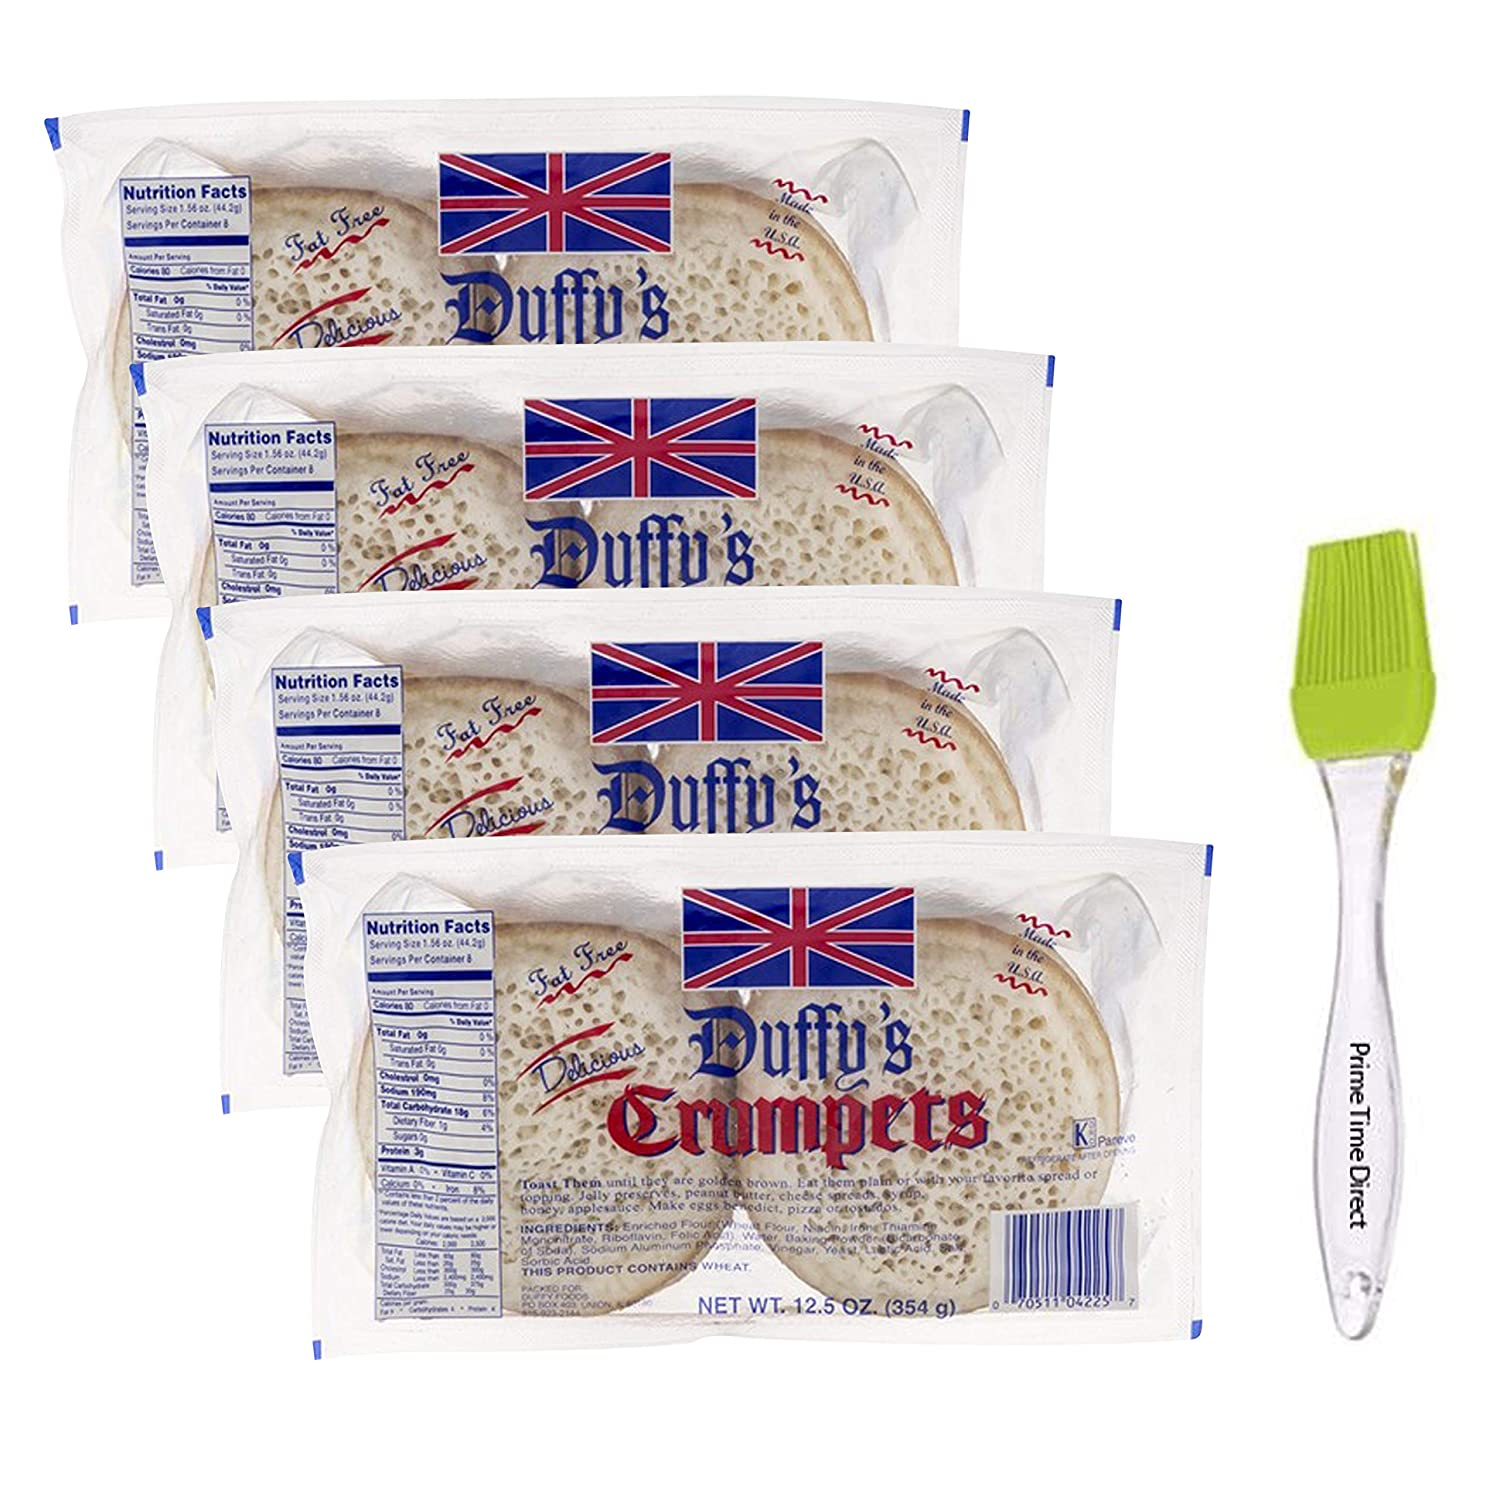 Duffy's Crumpets, 12.5 oz (Pack of 4) Bundled with PrimeTime Direct Silicone Basting Brush in a PTD Sealed Bag